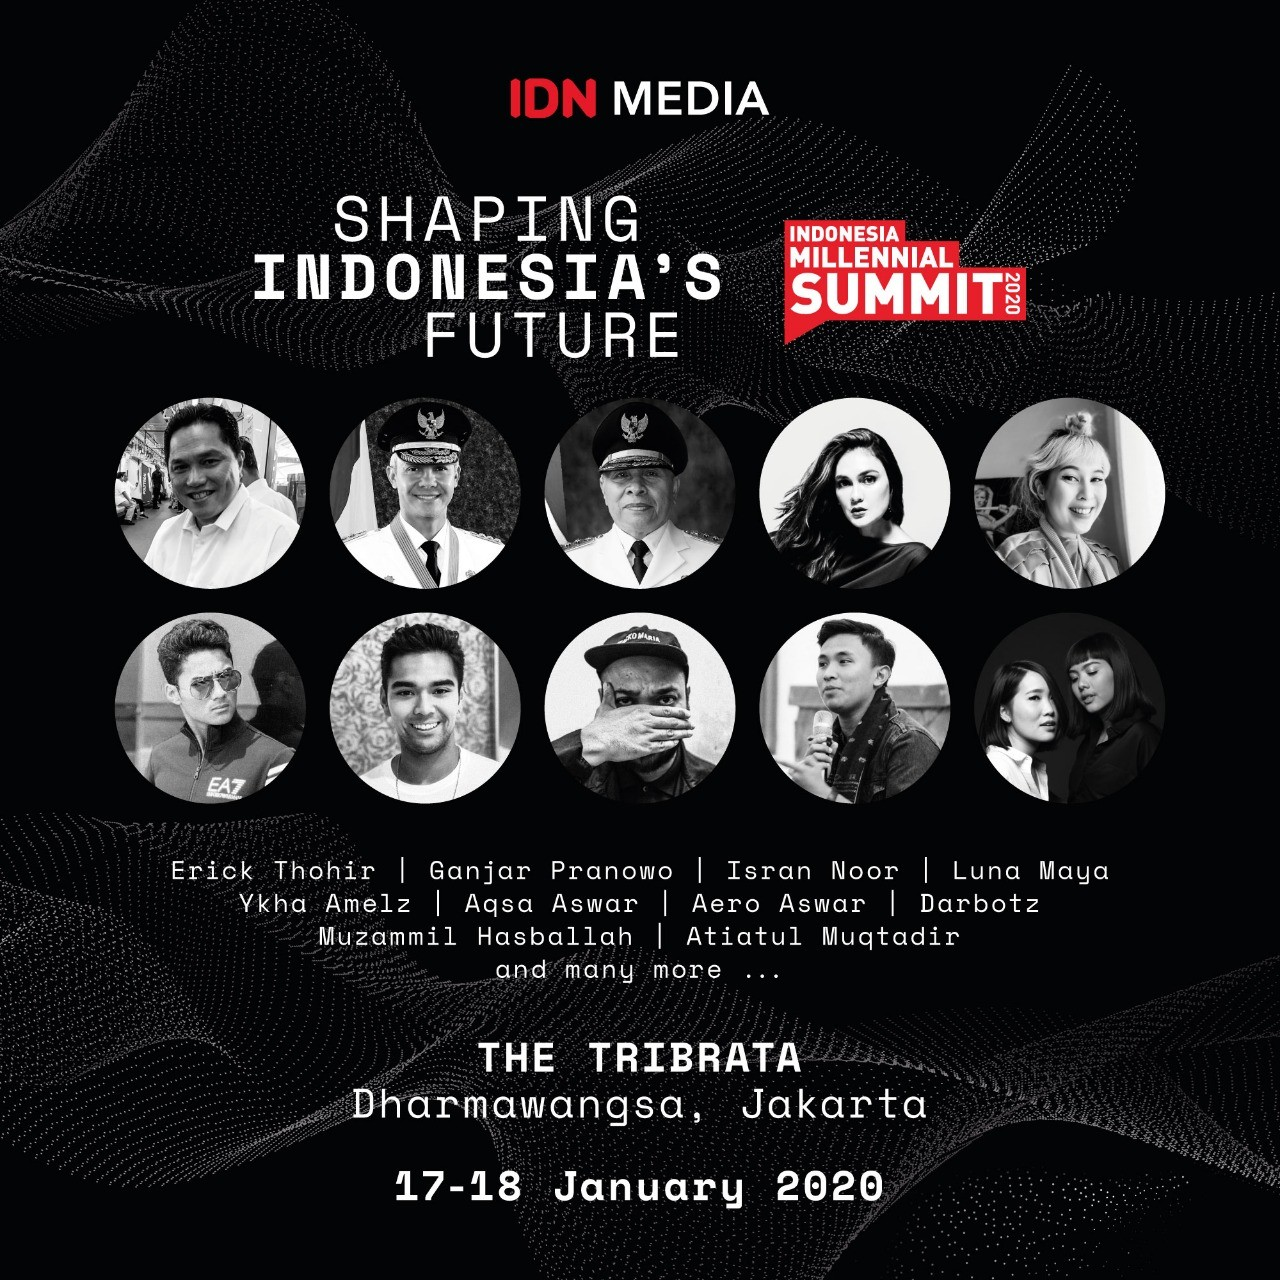 indonesia-millennial-summit-2020__zEnQy.jpg